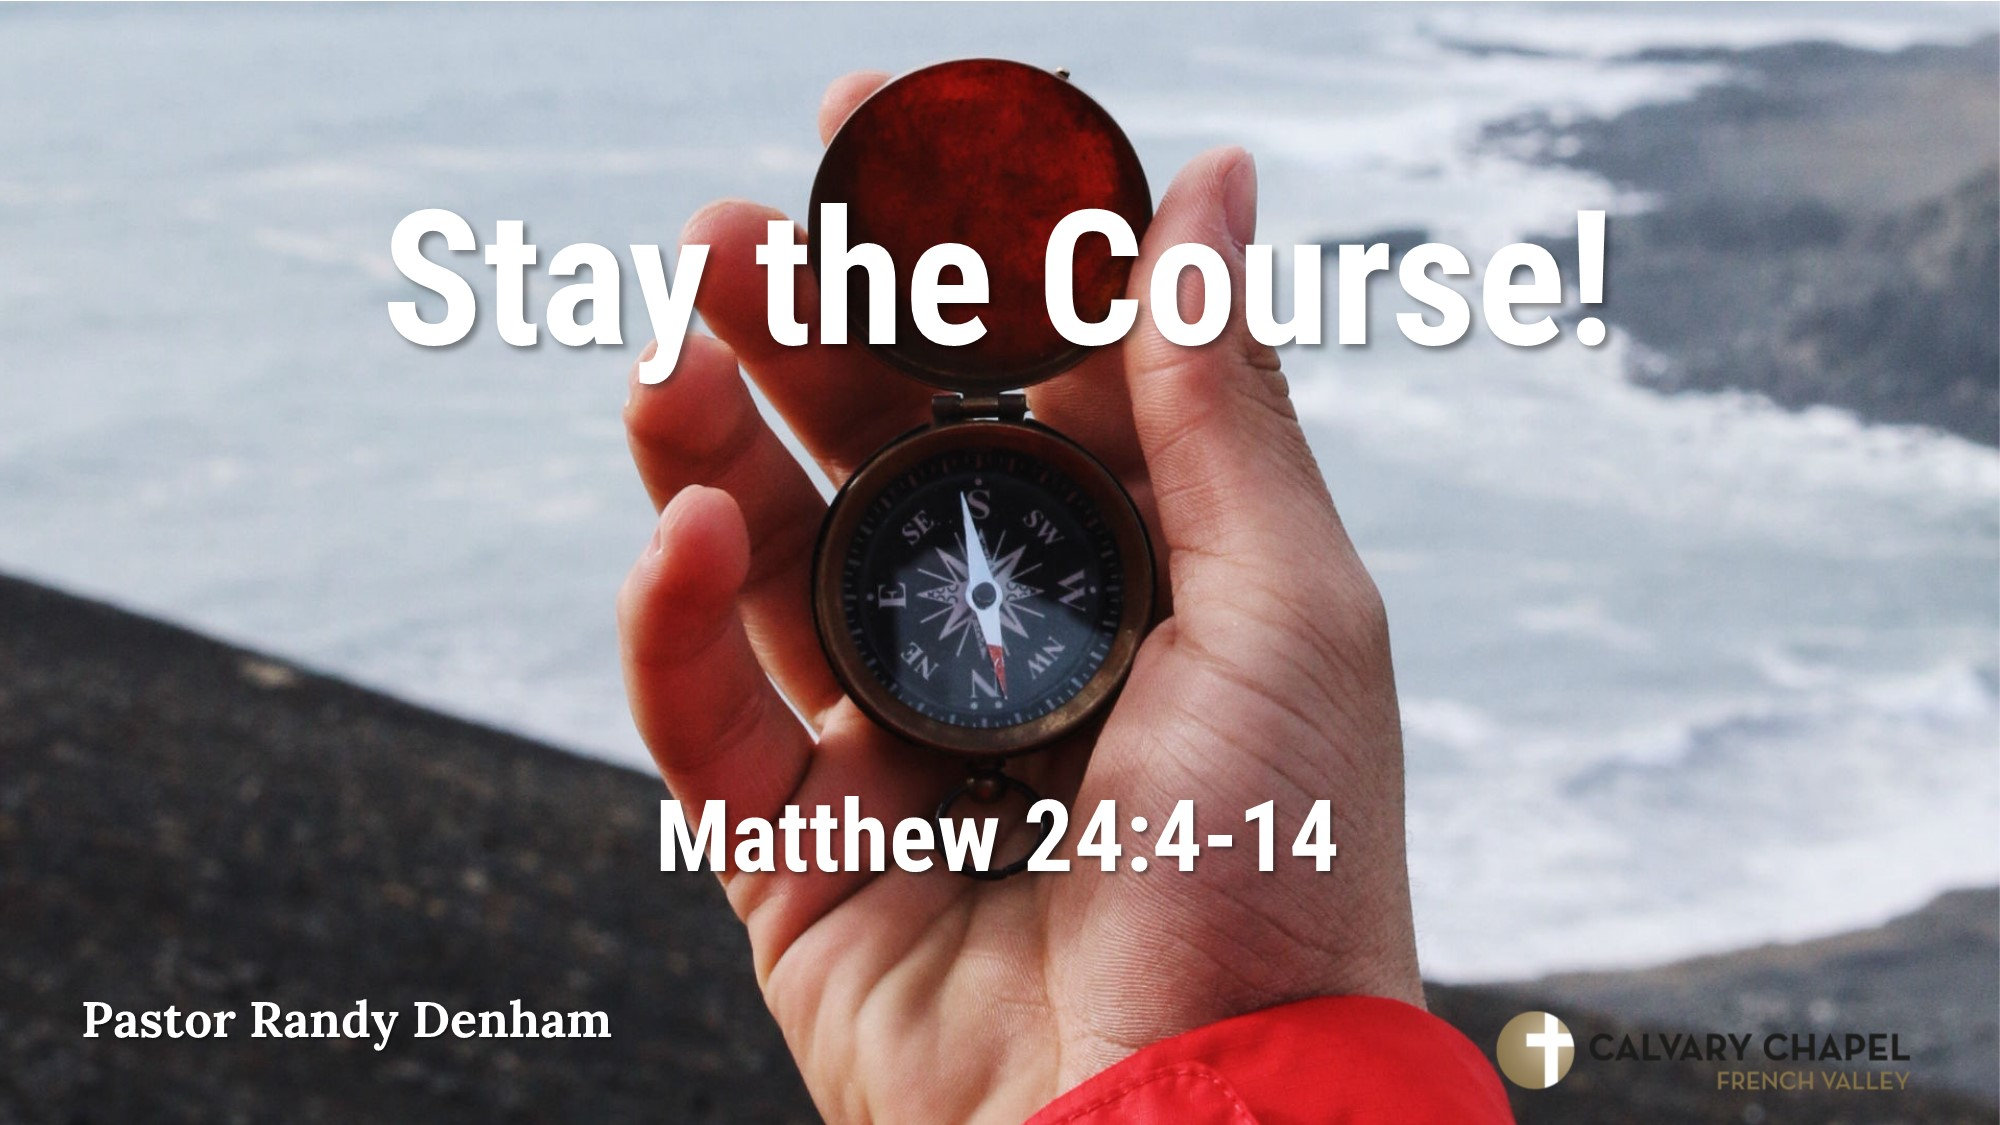 Stay the Course - Matthew 24:4-14 Image